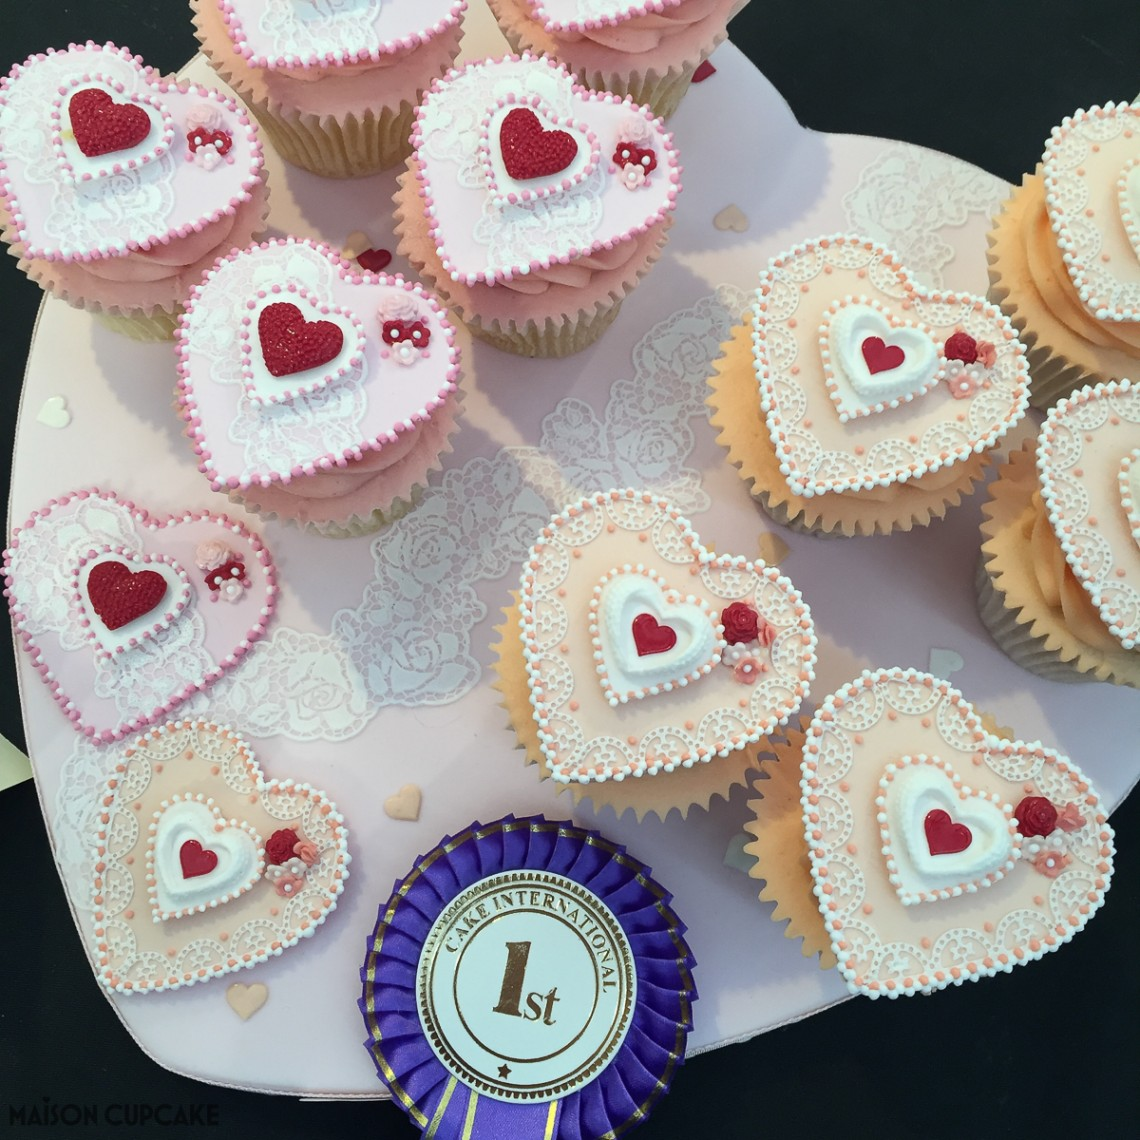 Intricate heart cupcakes by Tania Clarke